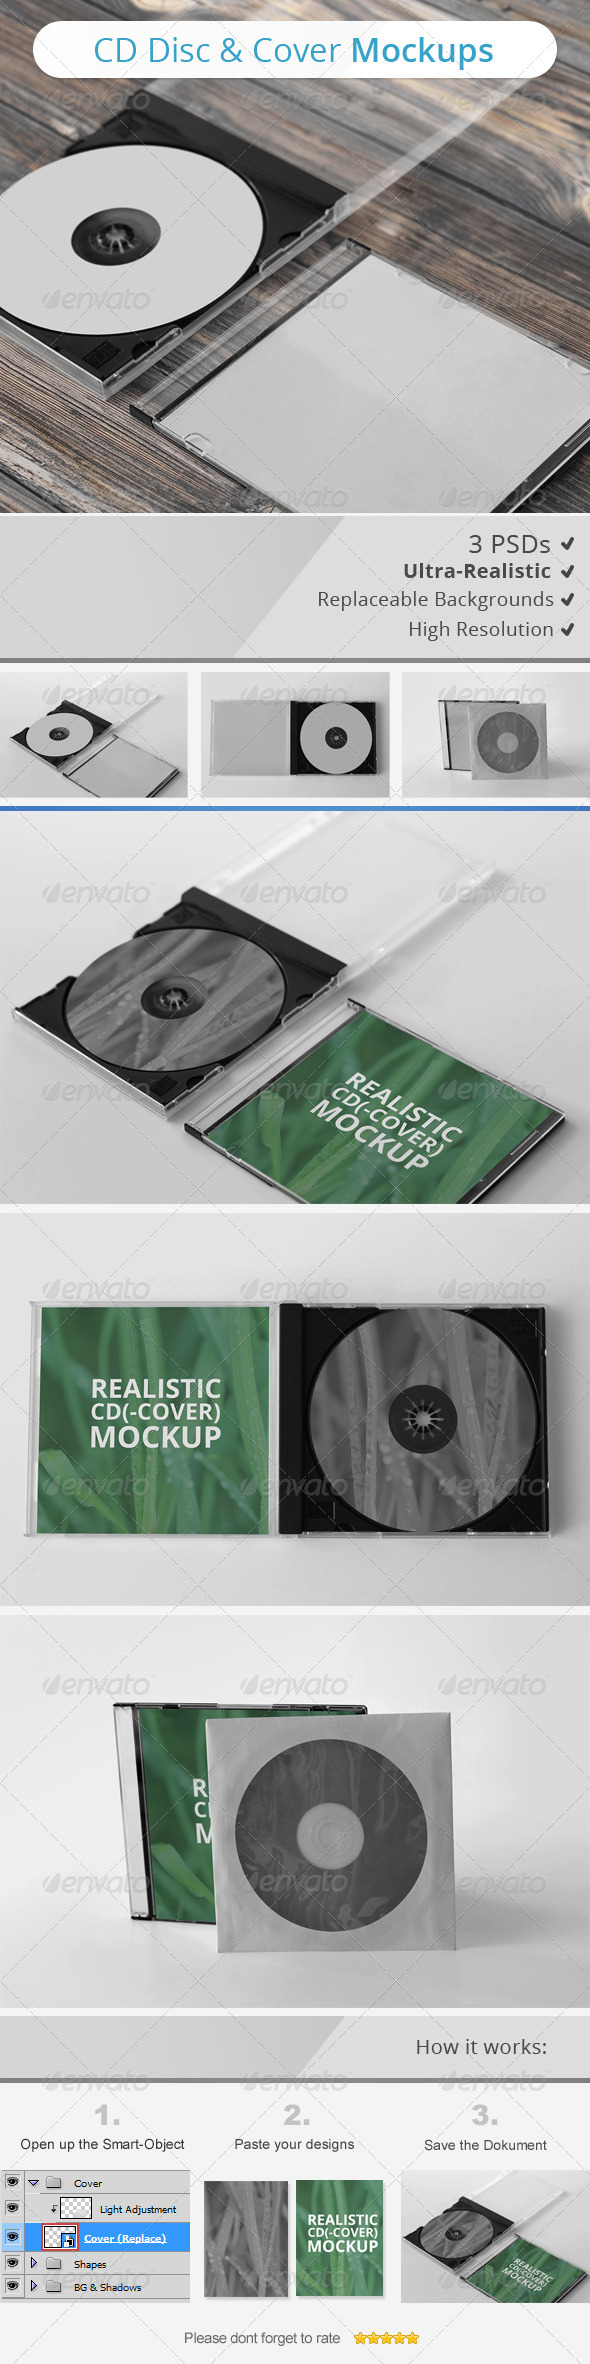 CD Disc & Cover Mockups - Discs Packaging